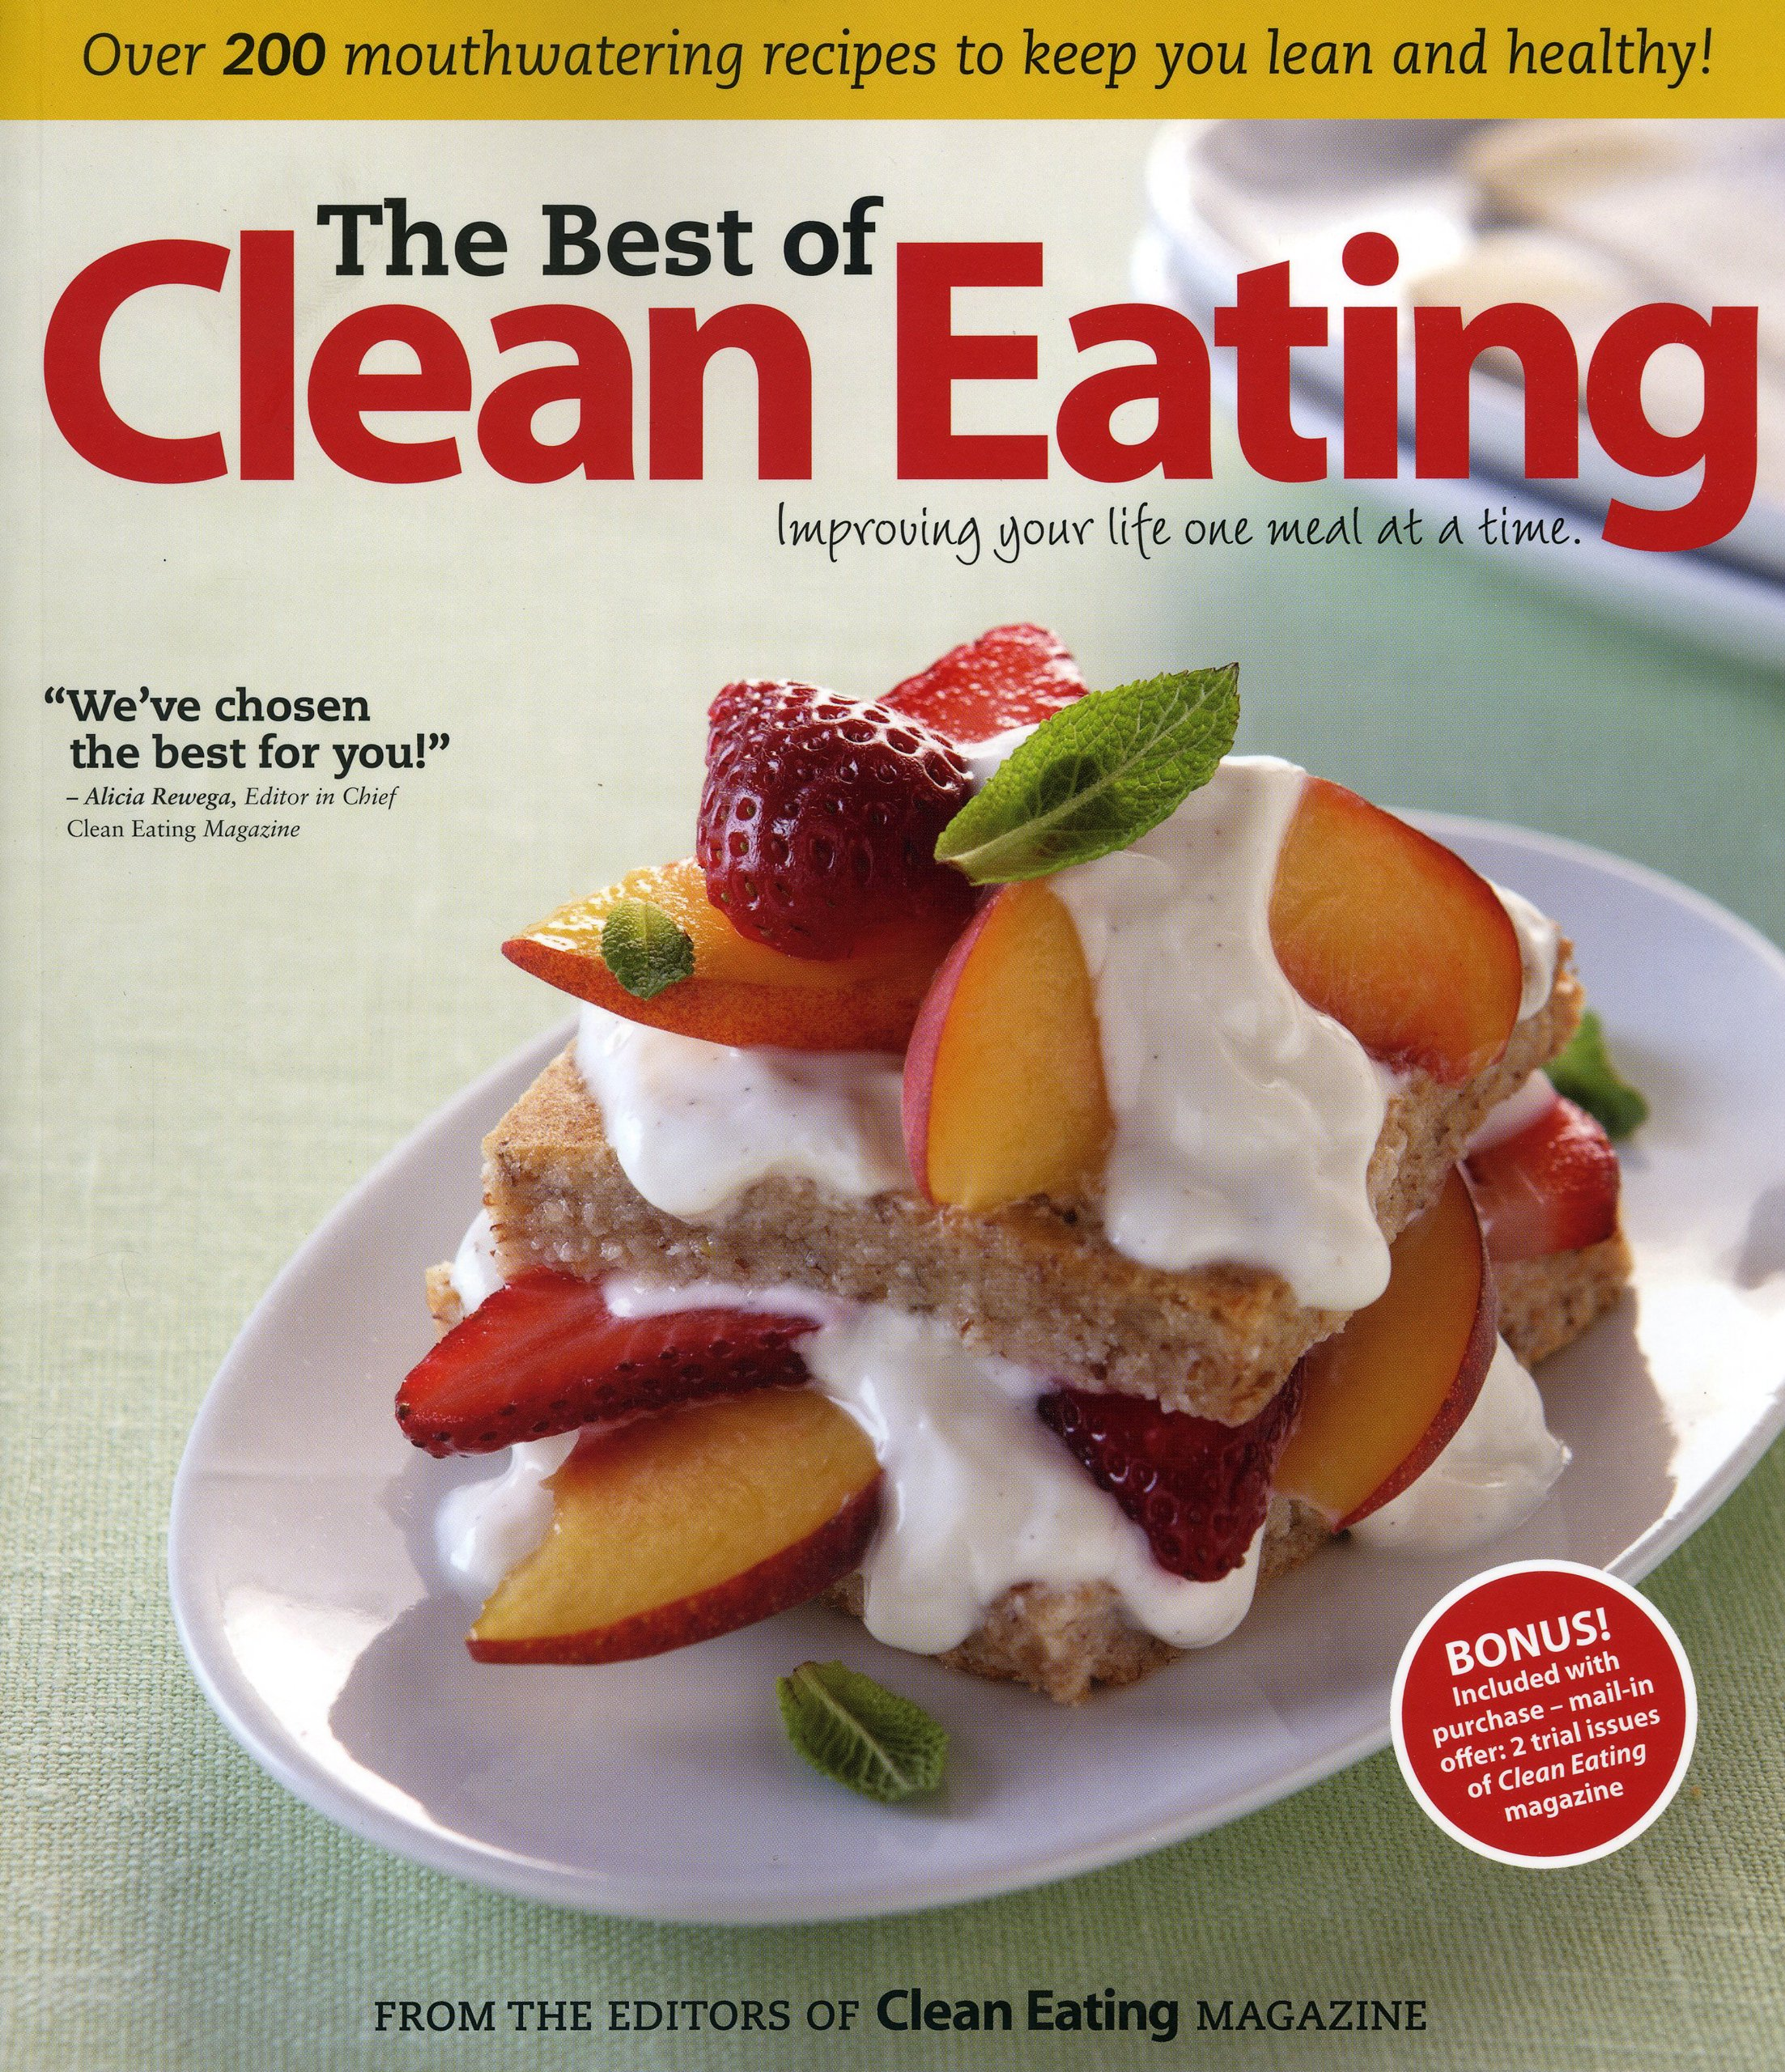 The best of clean eating over 200 mouthwatering recipes to keep you the best of clean eating over 200 mouthwatering recipes to keep you lean and healthy editors of clean eating magazine 9781552100851 amazon books forumfinder Image collections